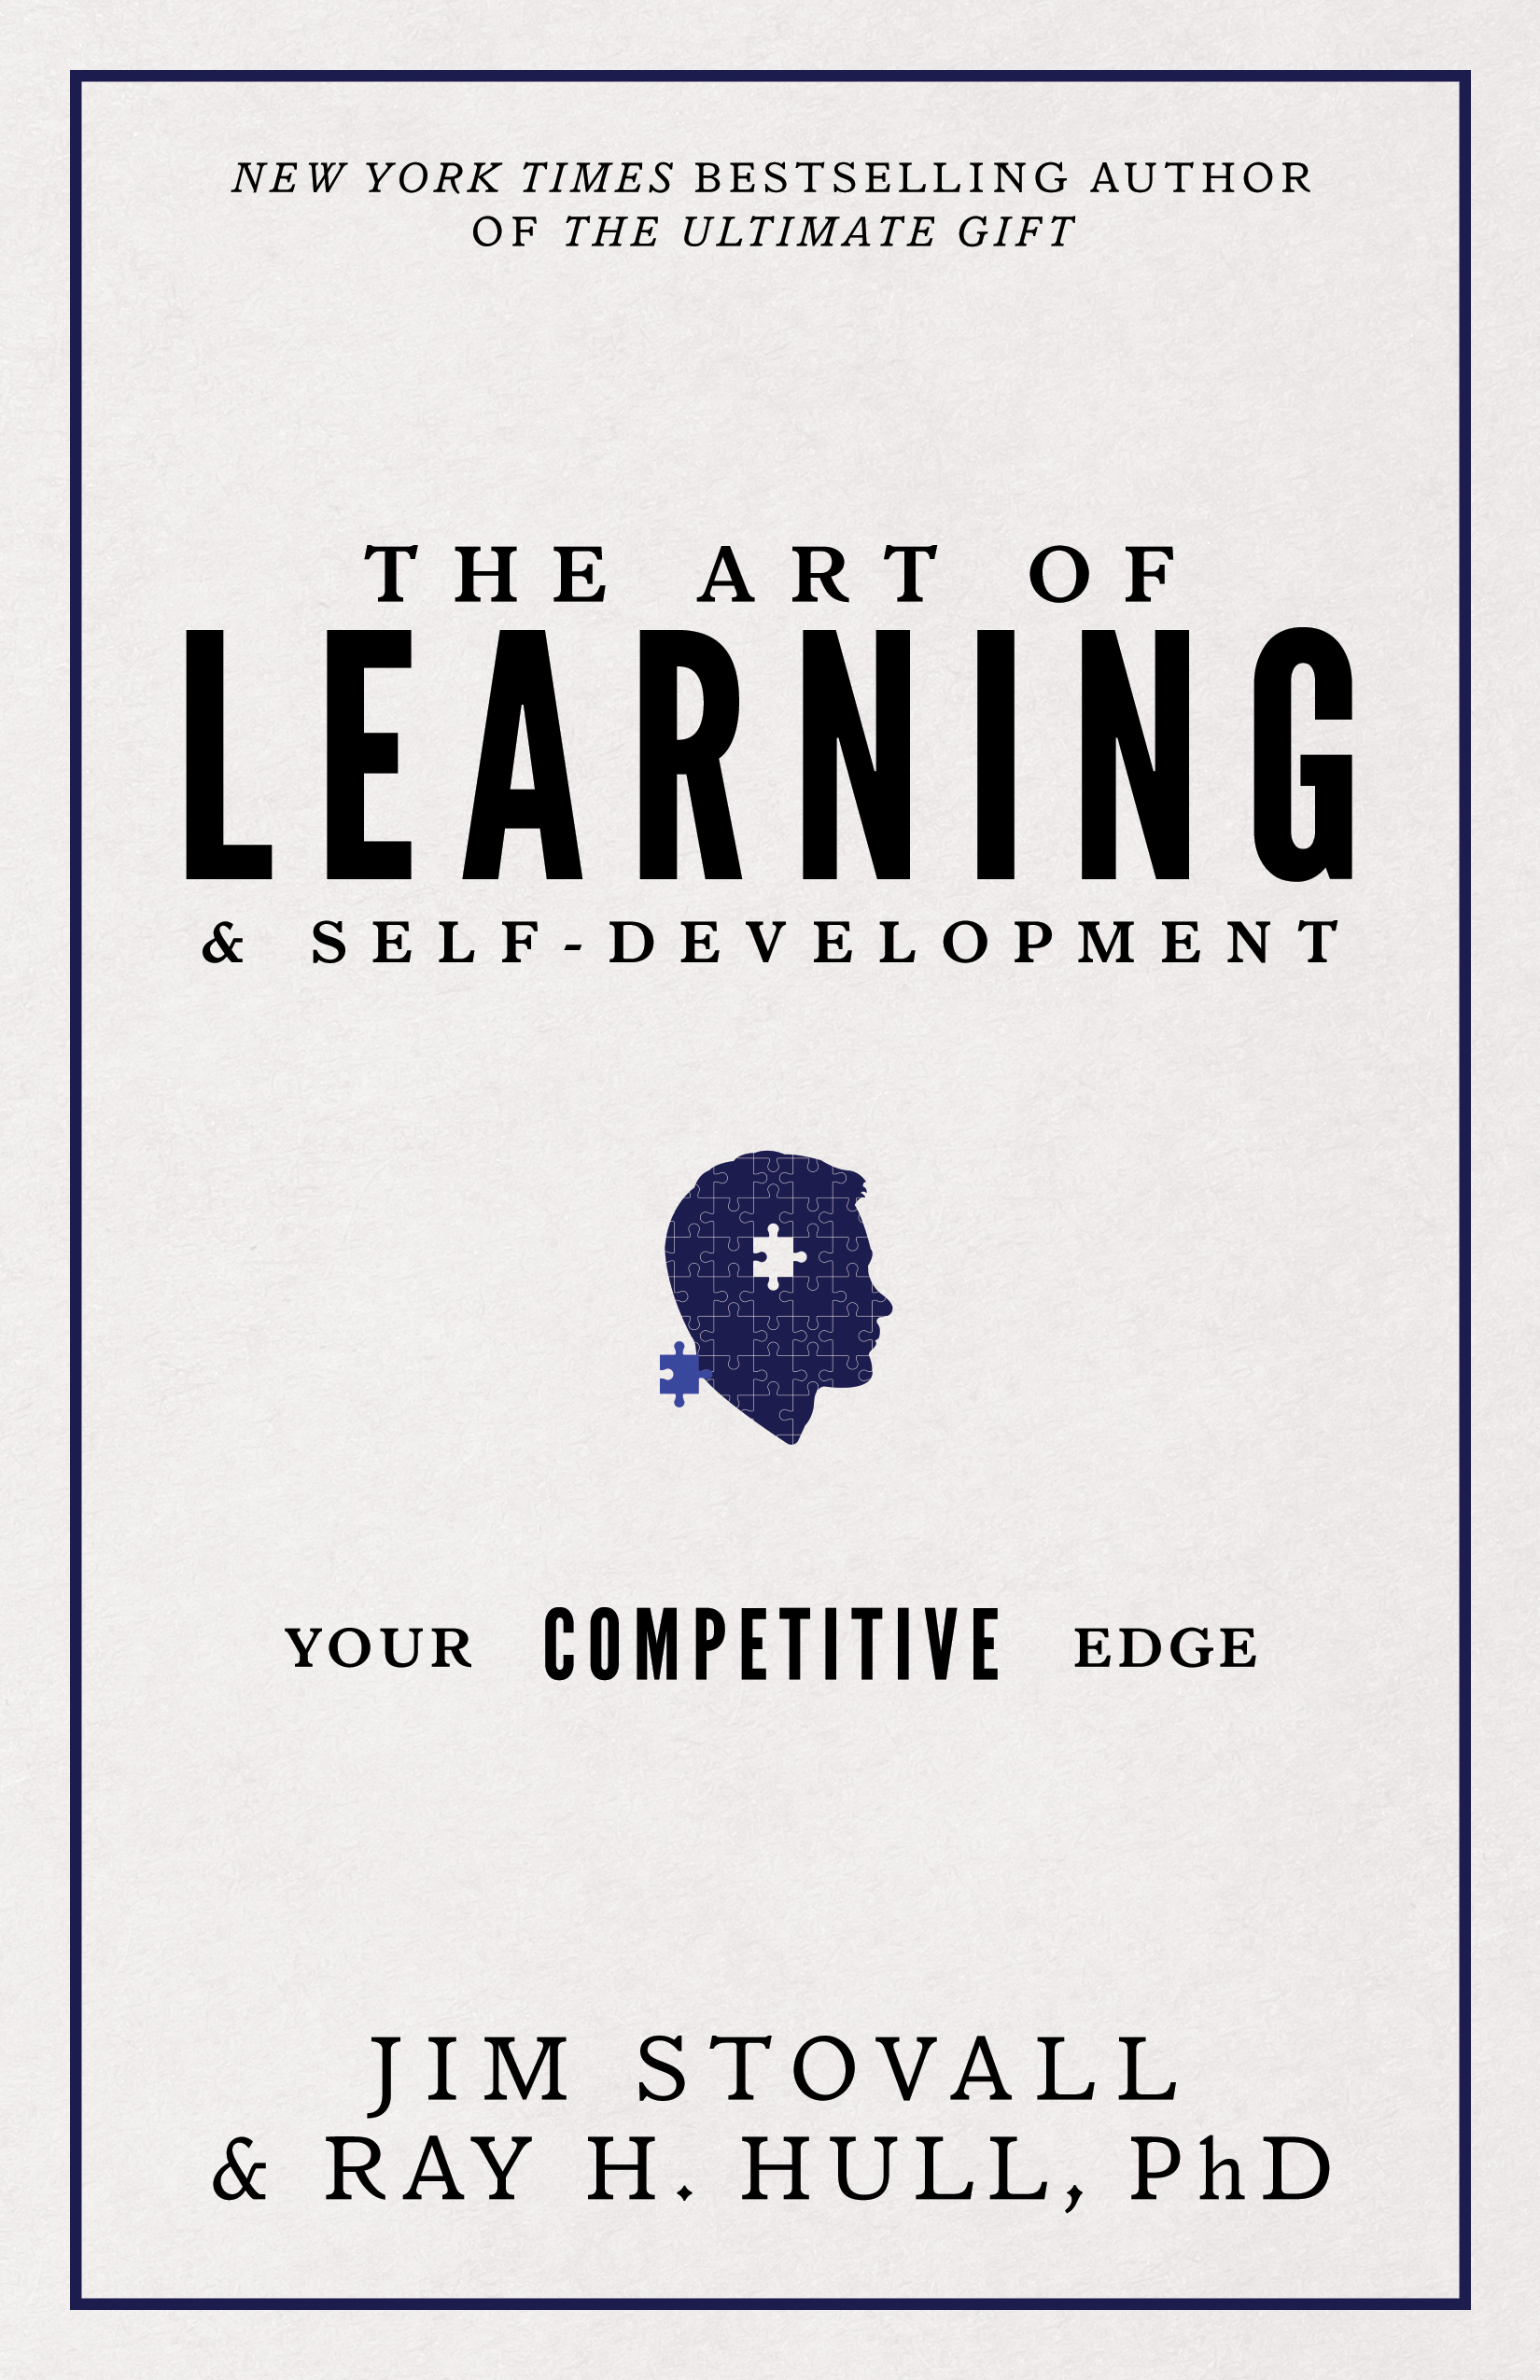 The Art of Learning & Self-Development - By jim stovall & ray h. hull, phd